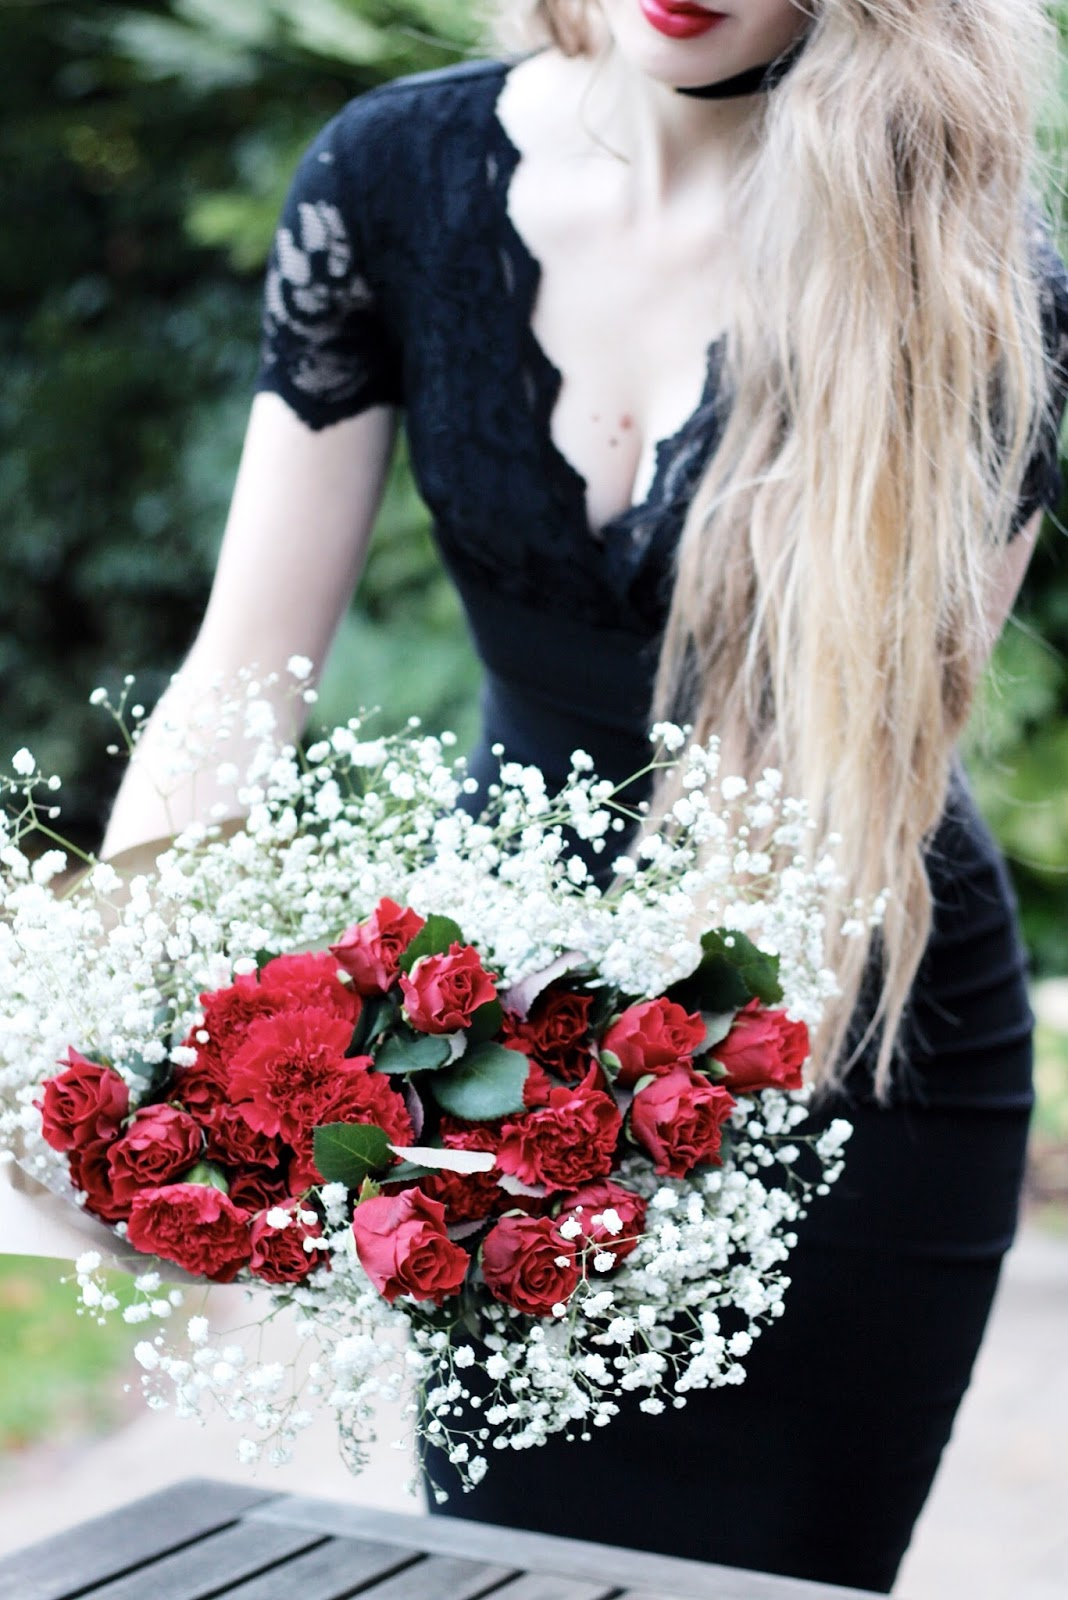 Red roses and carnations luxury Christmas bouquet